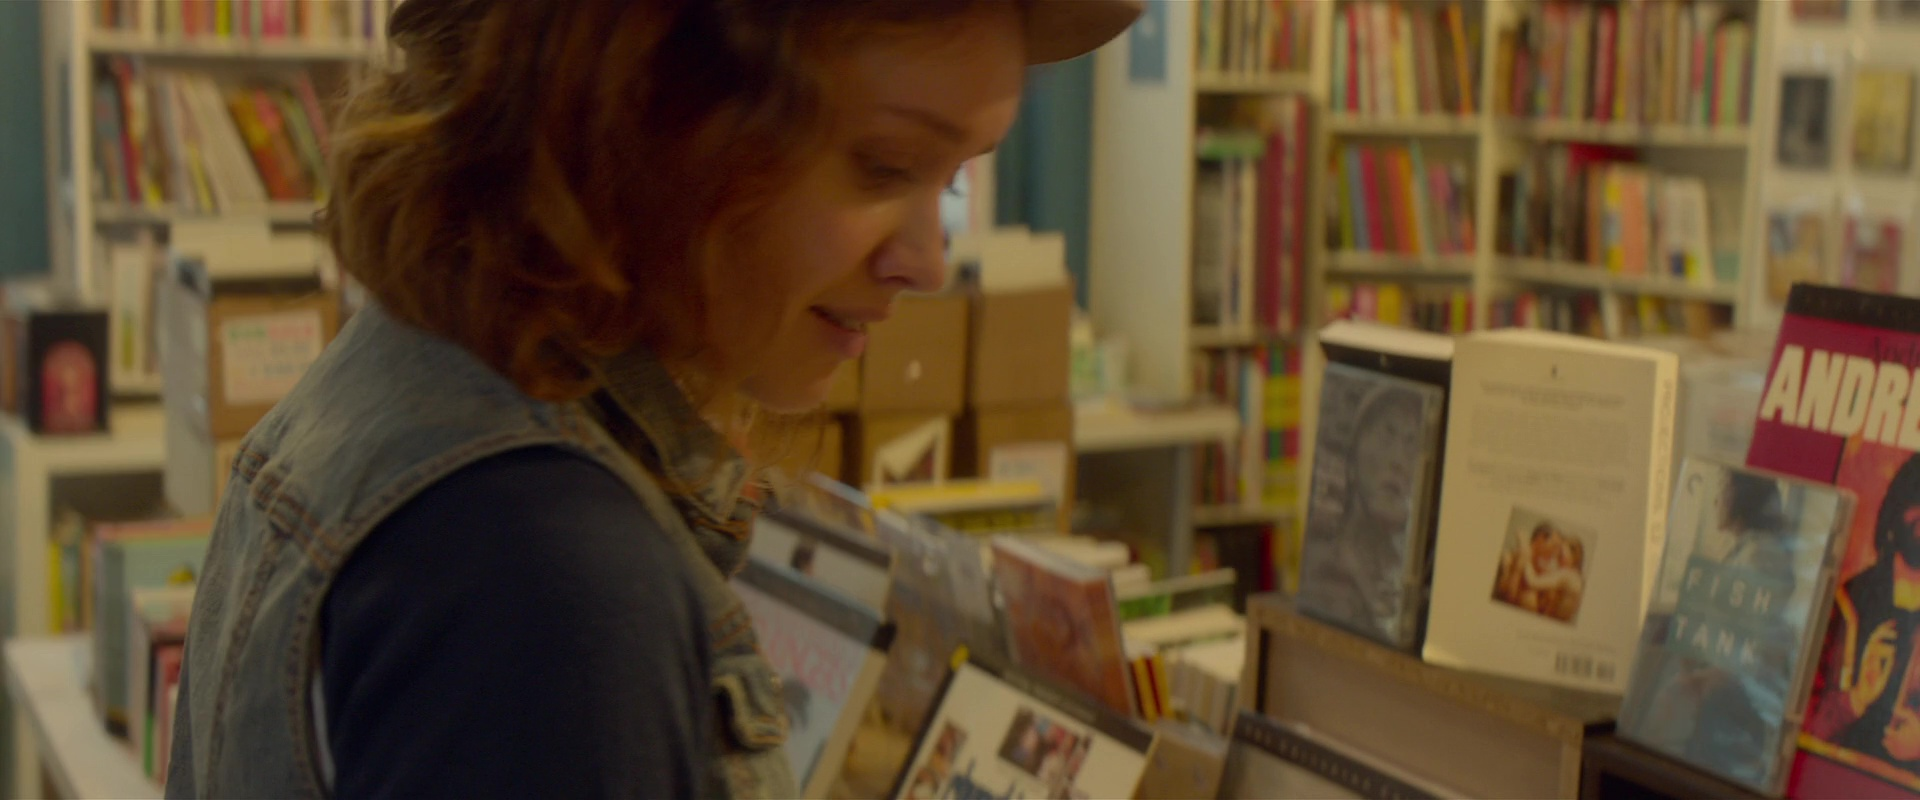 Me and Earl and the Dying Girl film still 9